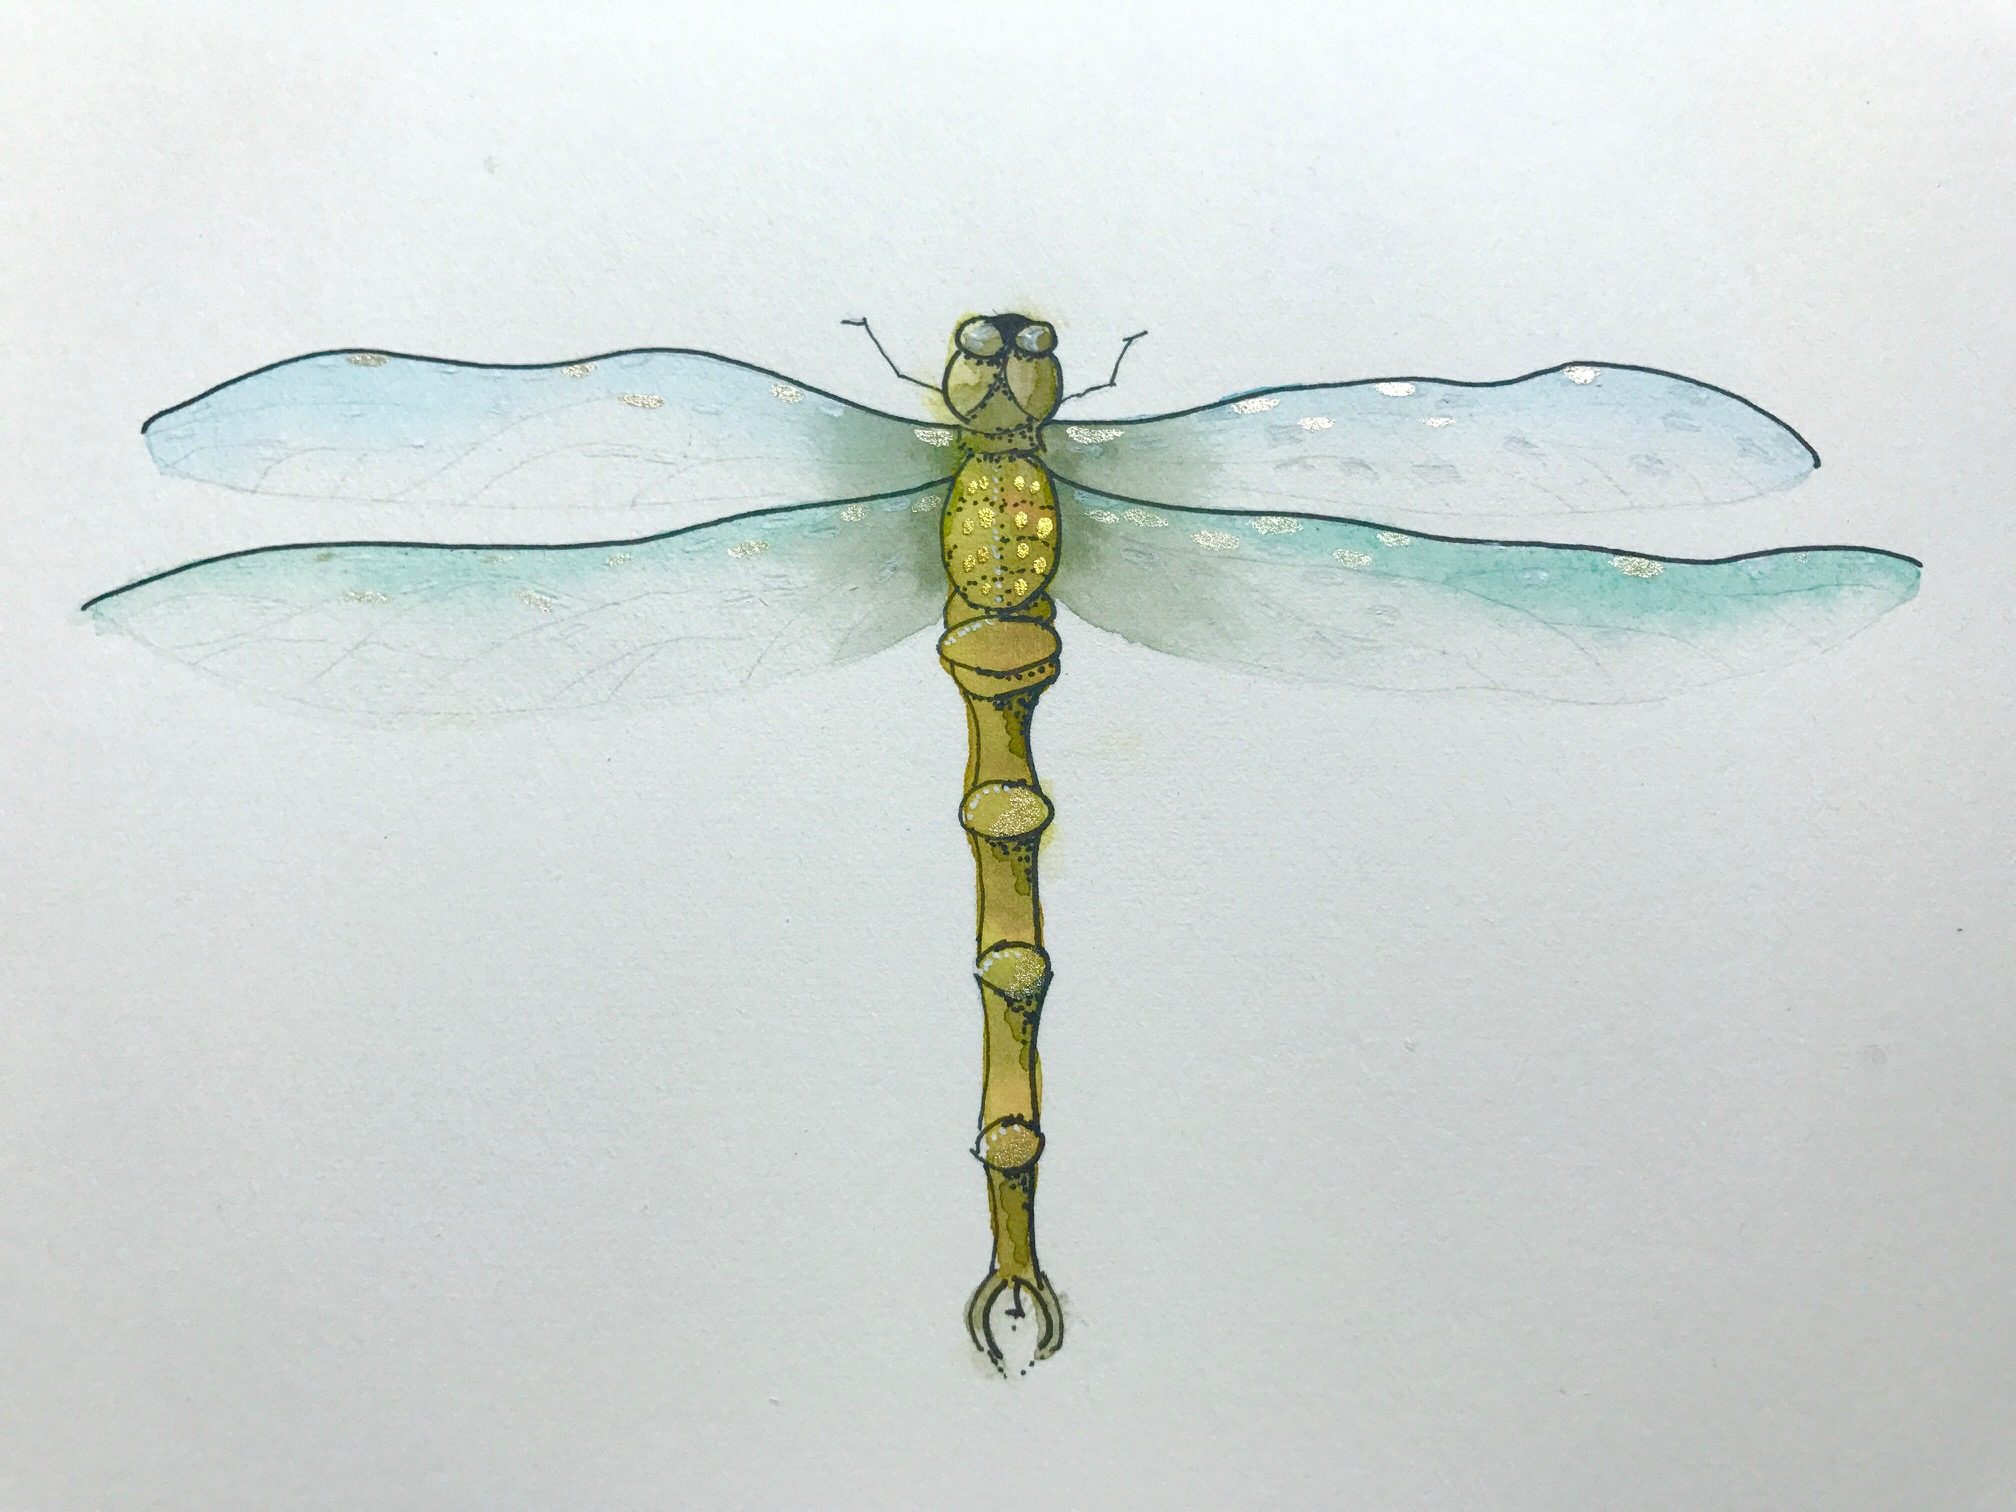 2016x1512 Painting Dragonflies A Step By Step Guide For Watercolor Dragonflies